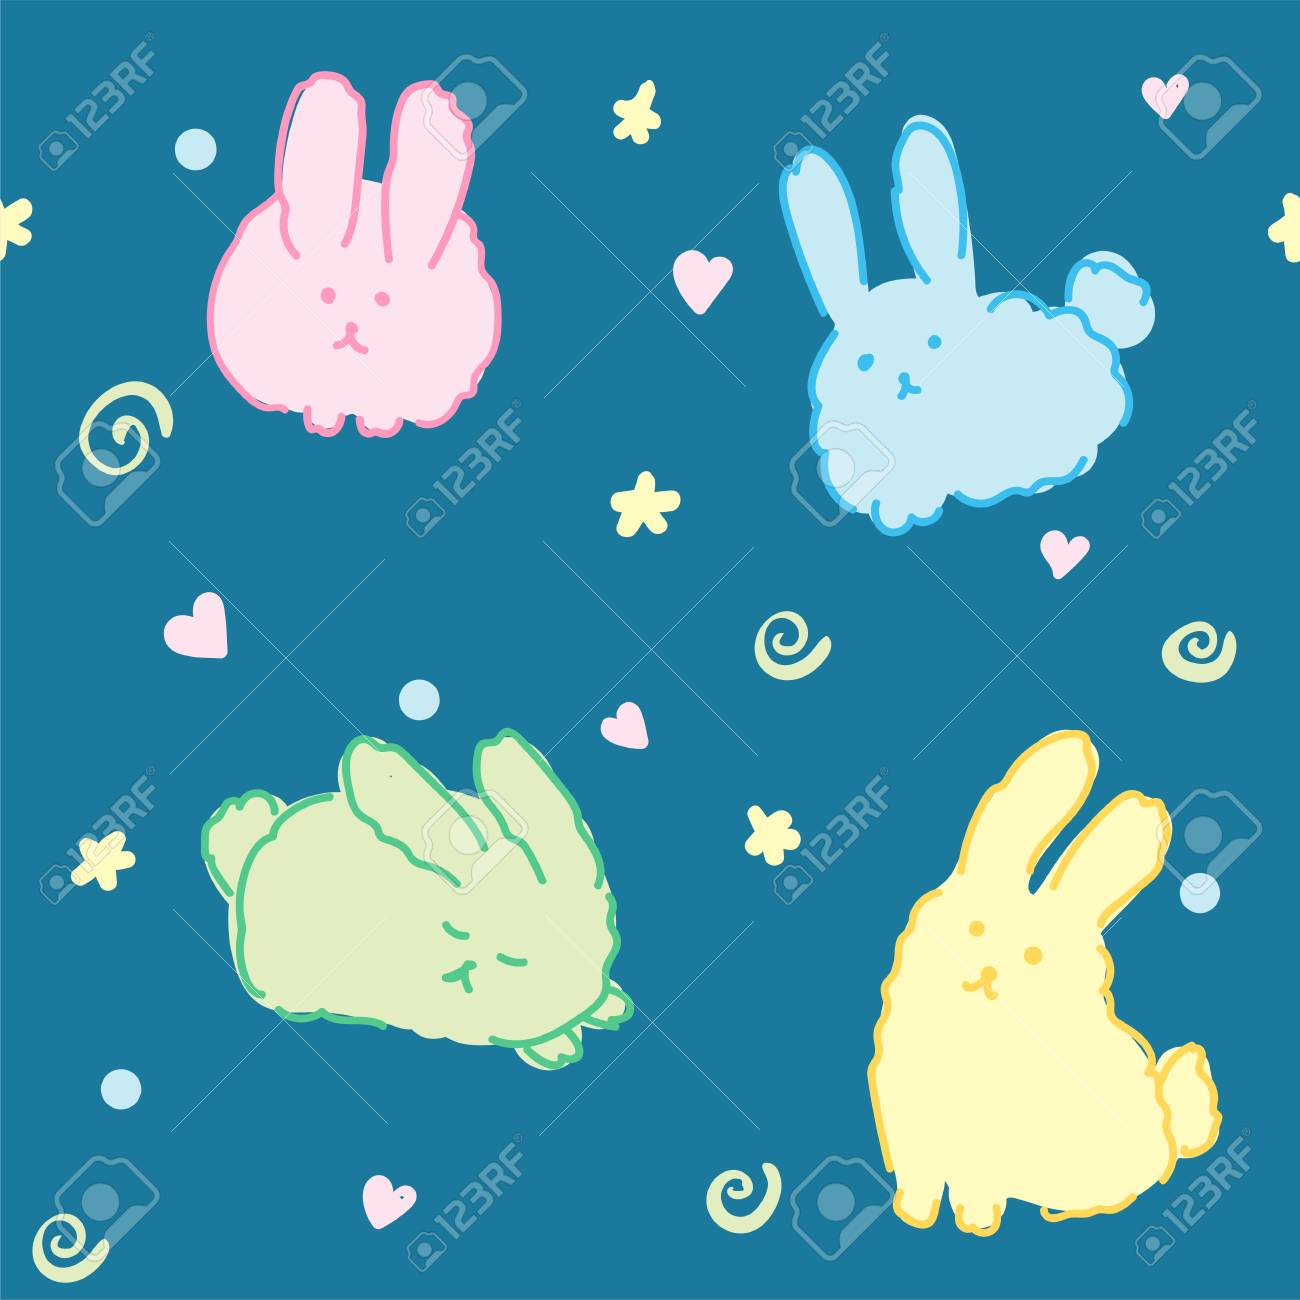 Fluffy Bunnies Wallpaper Seamless Pattern Cute Rabbits Kawaii